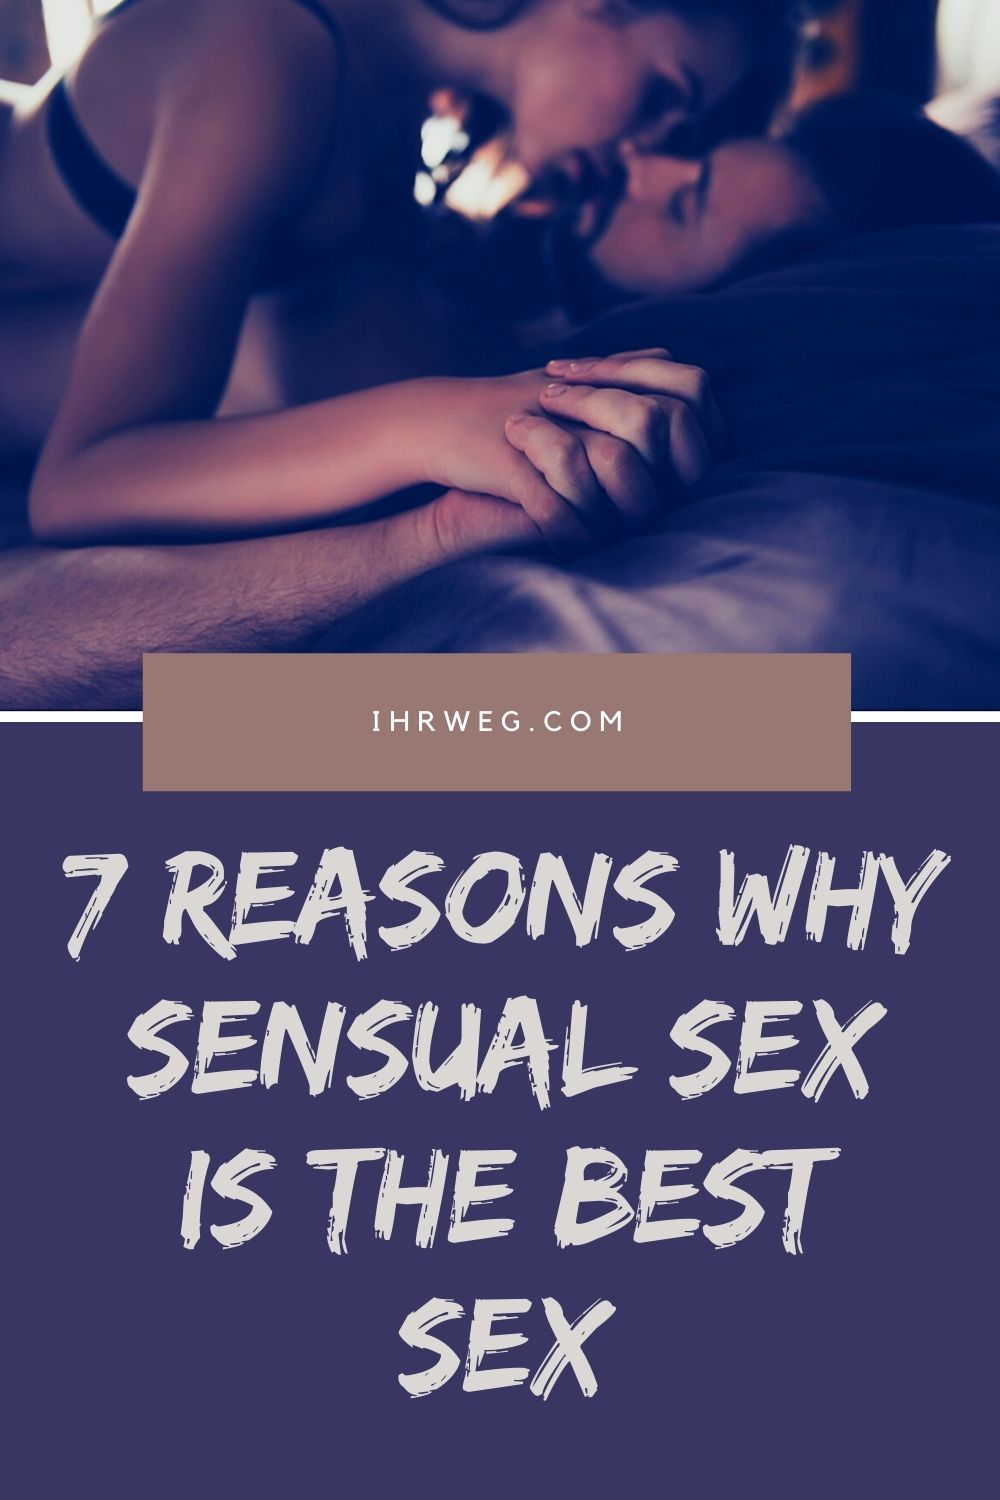 7 Reasons Why Sensual Sex Is The Best Sex